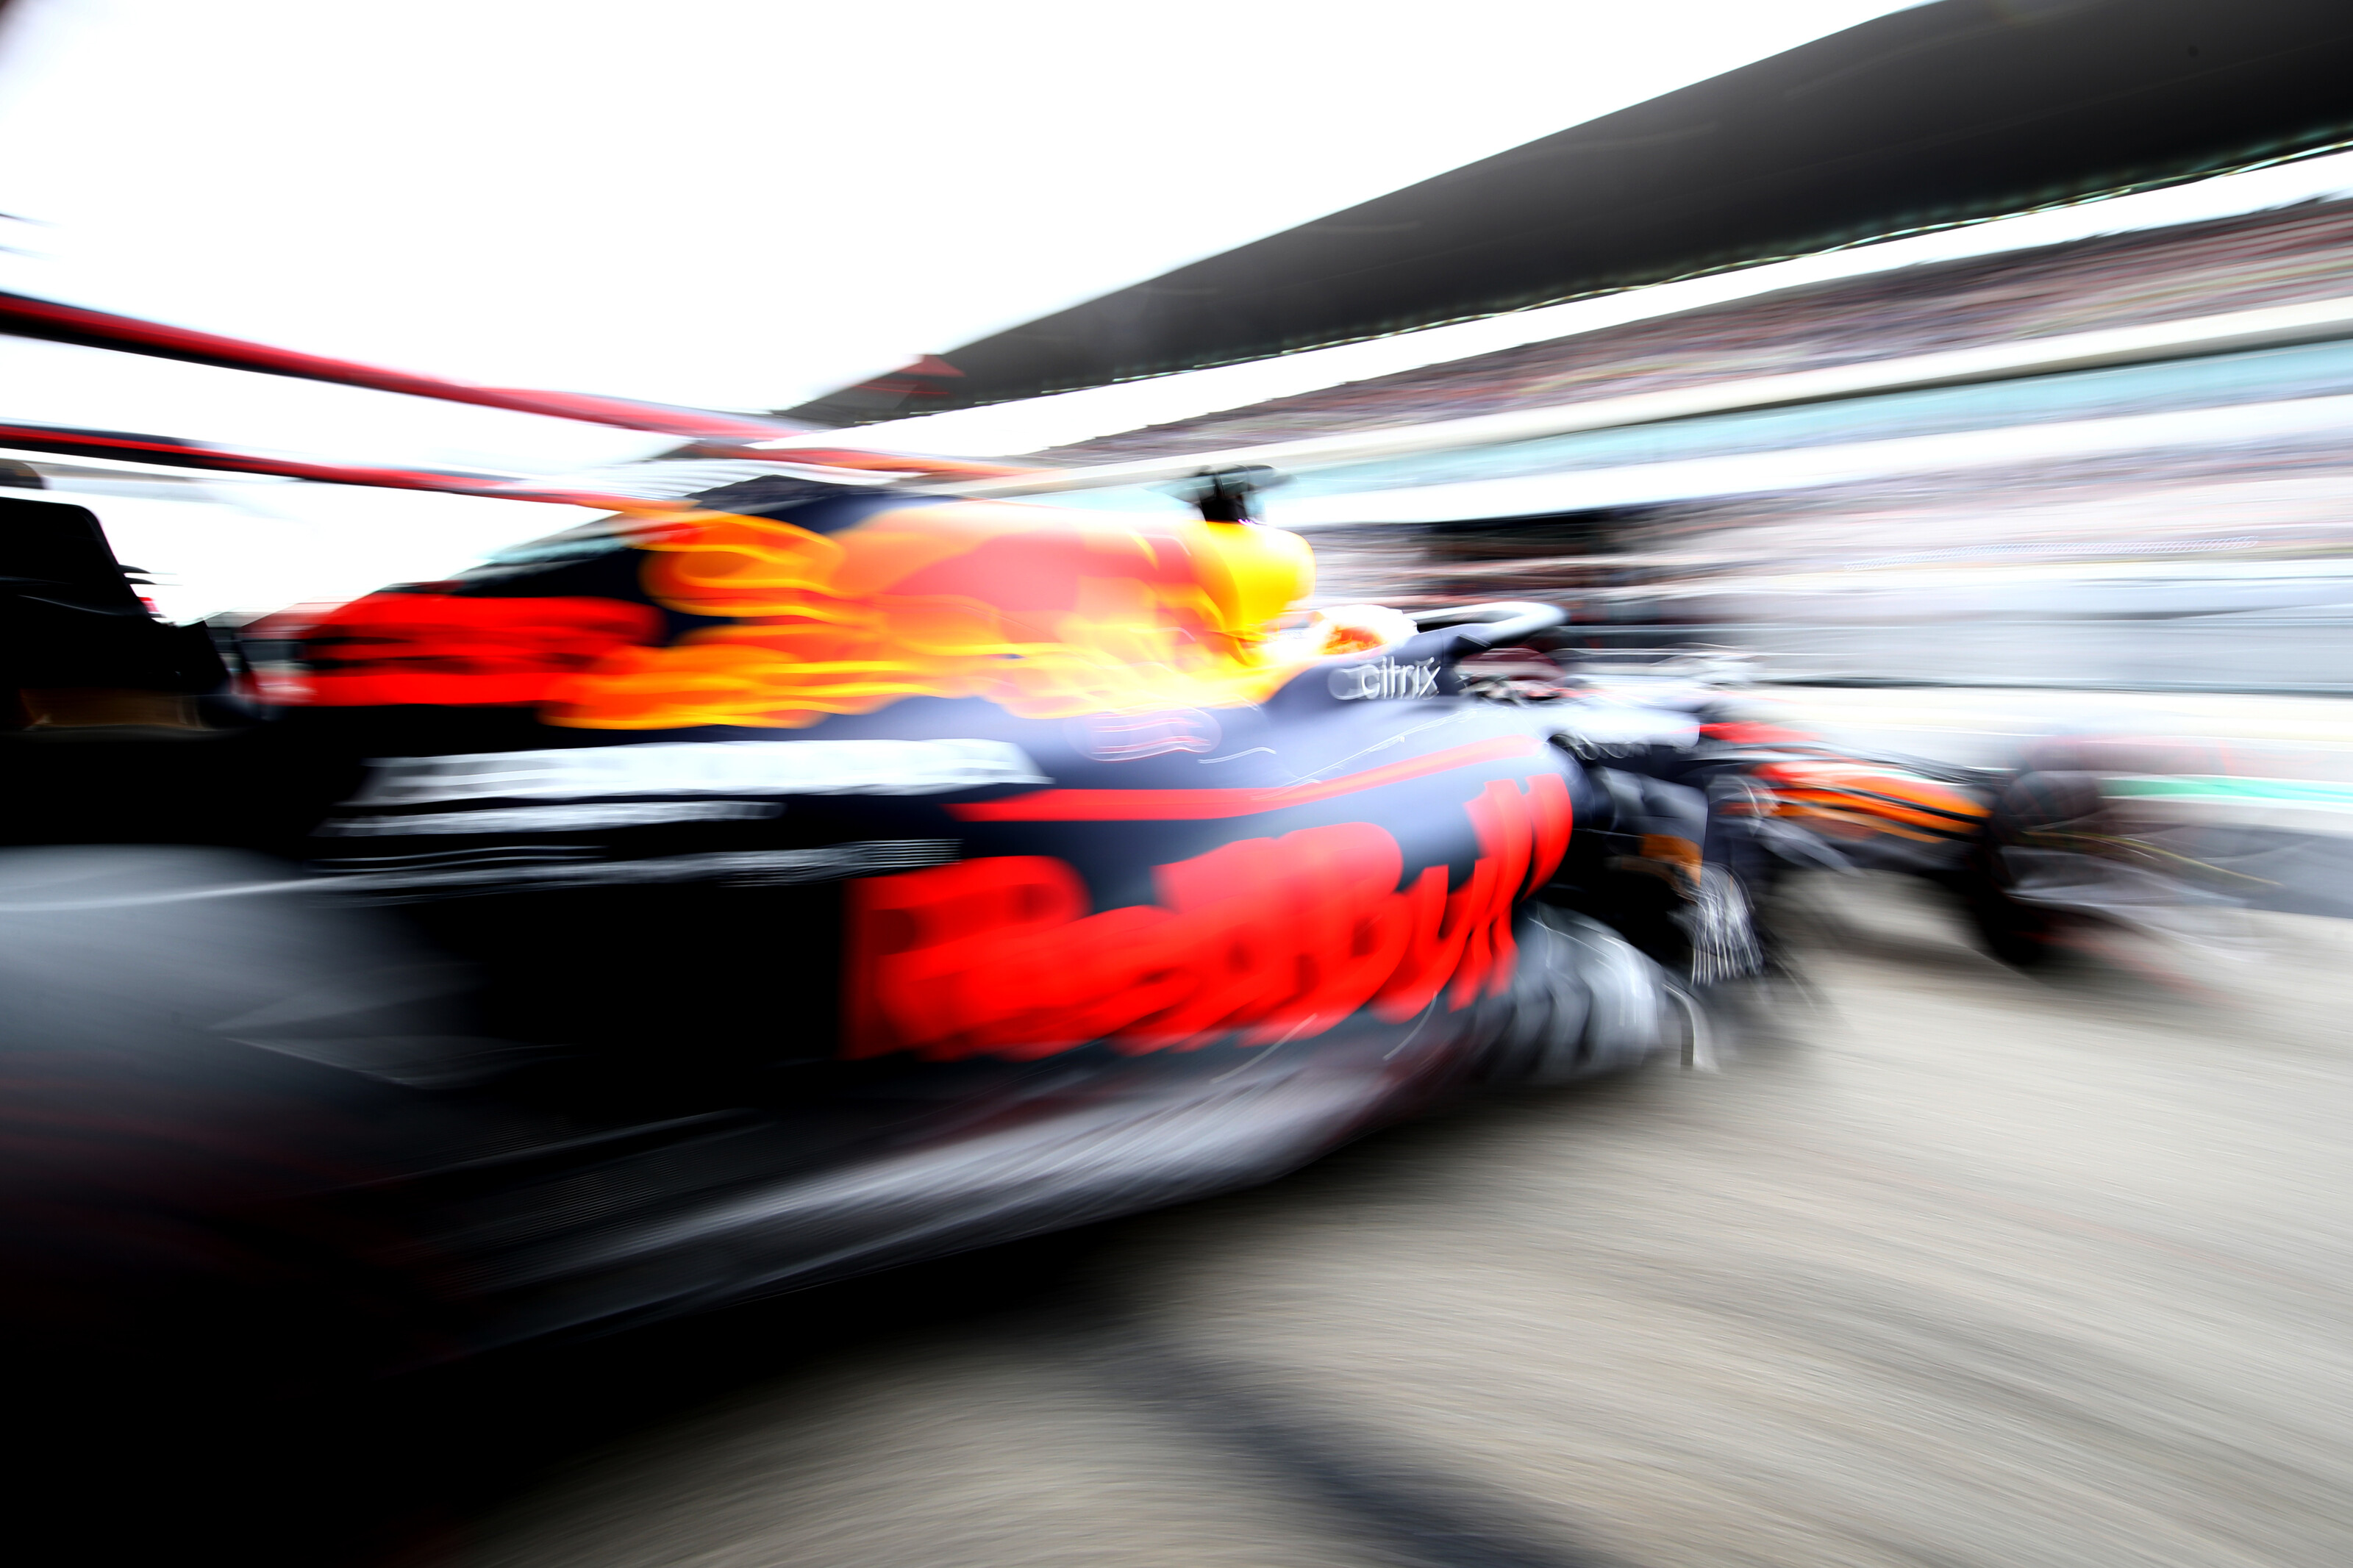 PORTIMAO, PORTUGAL - OCTOBER 25: Max Verstappen of the Netherlands driving the (33) Aston Martin Red Bull Racing RB16 leaves the garage before the F1 Grand Prix of Portugal at Autodromo Internacional do Algarve on October 25, 2020 in Portimao, Portugal. (Photo by Mark Thompson/Getty Images) // Getty Images / Red Bull Content Pool